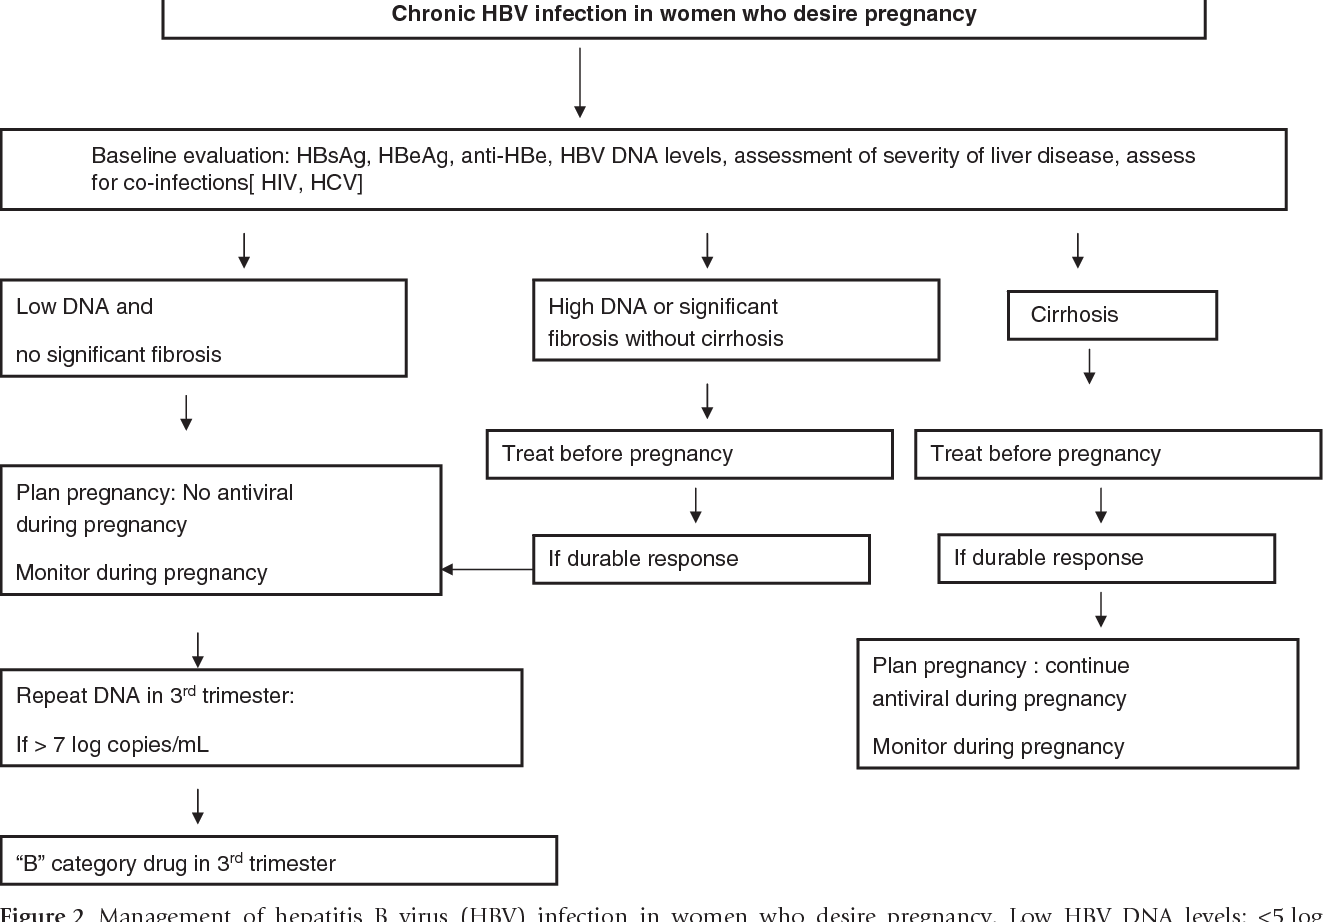 Is pregnancy possible with HBV